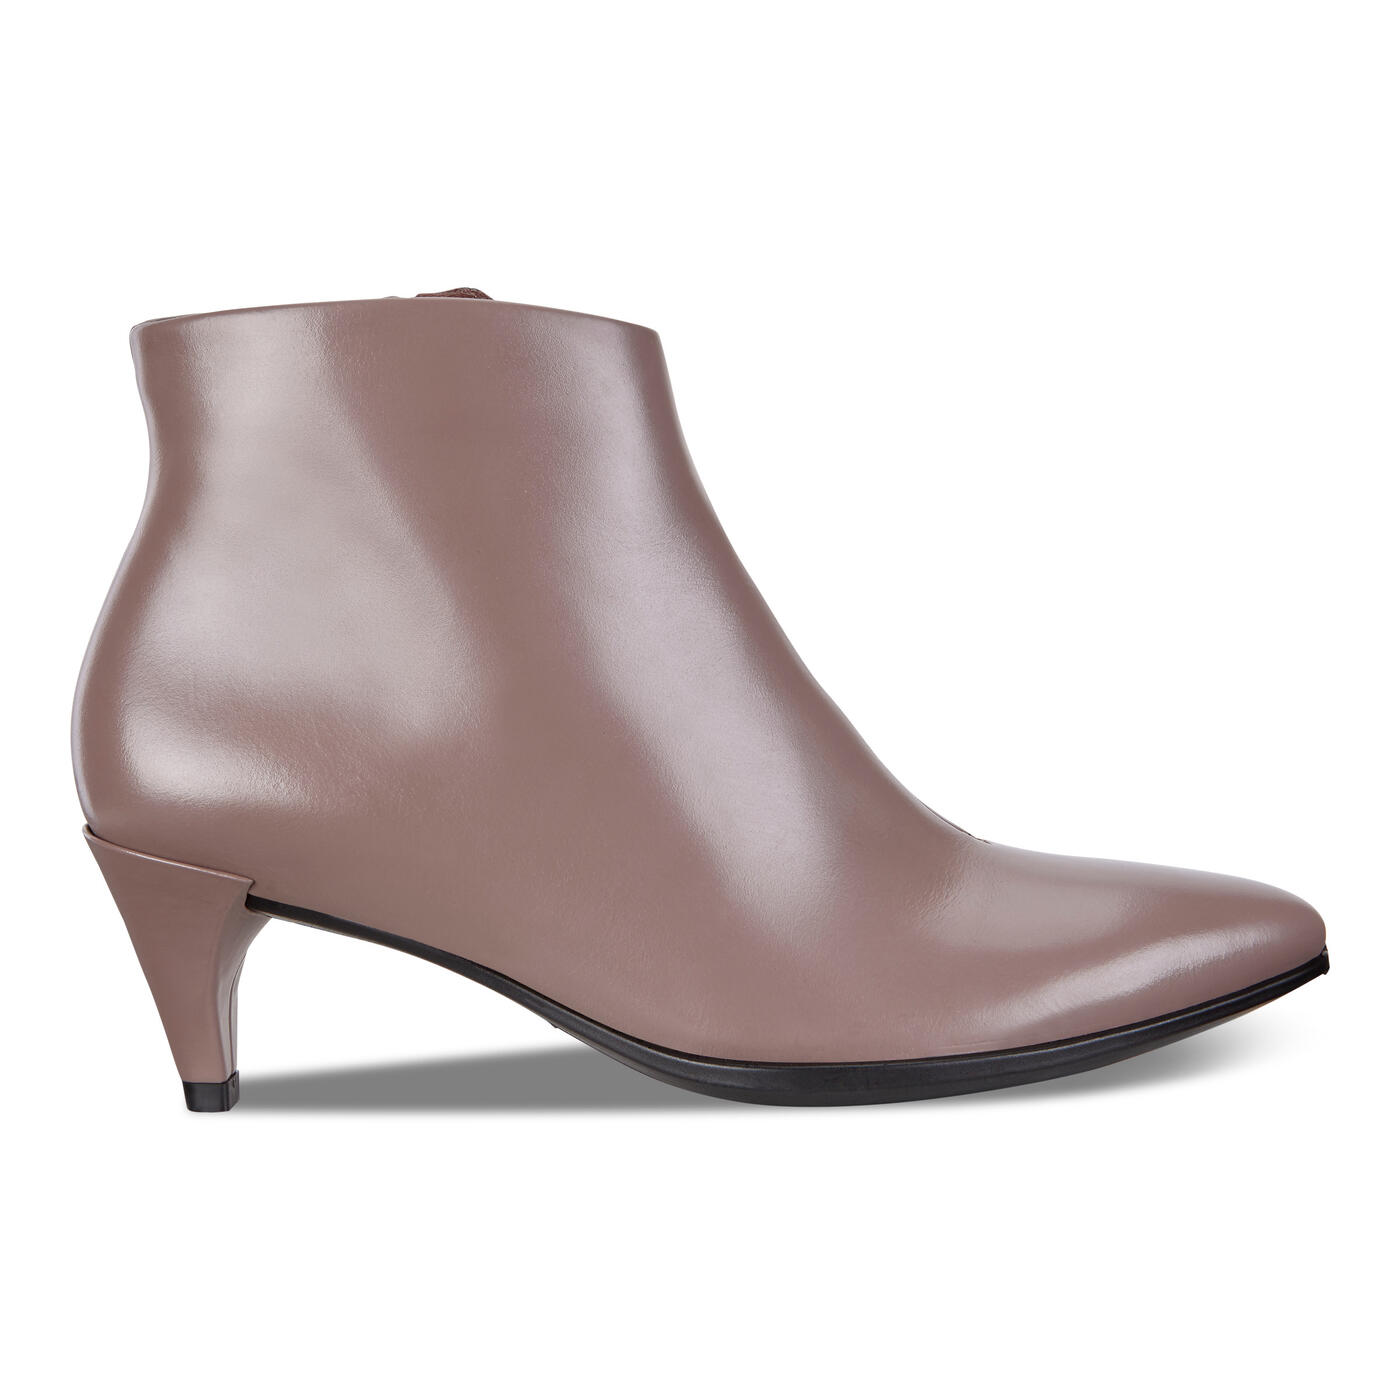 BOTTE ECCO SHAPE 45 POINTY SLEEK